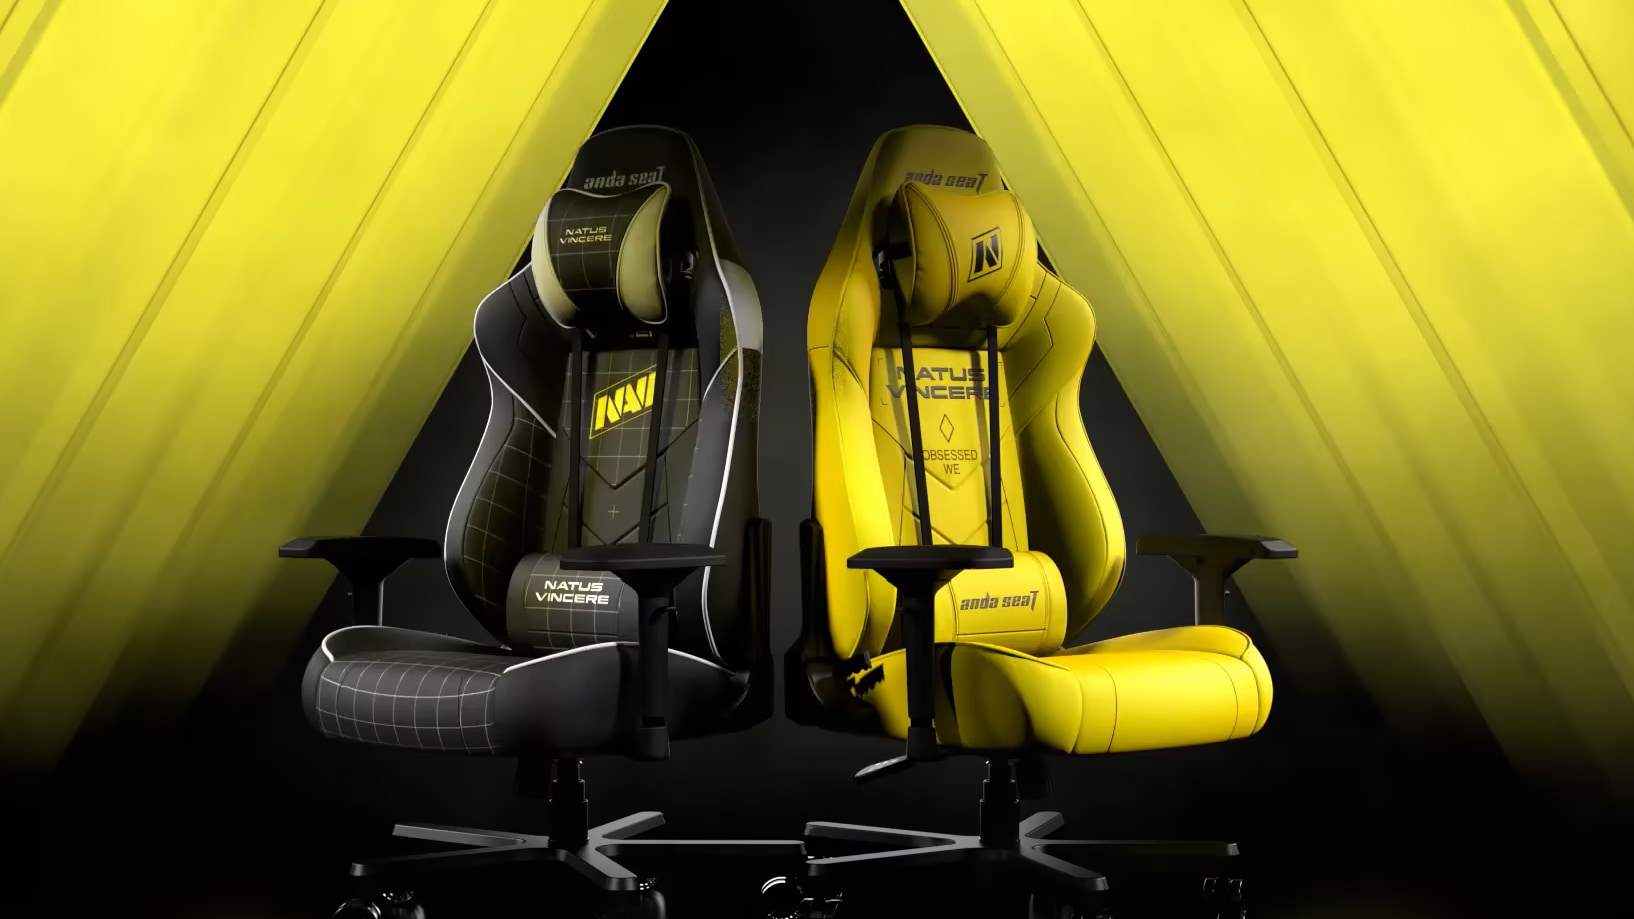 Deal: Pre-order the new Navi Gaming Chair from AndaSeat and save 10%